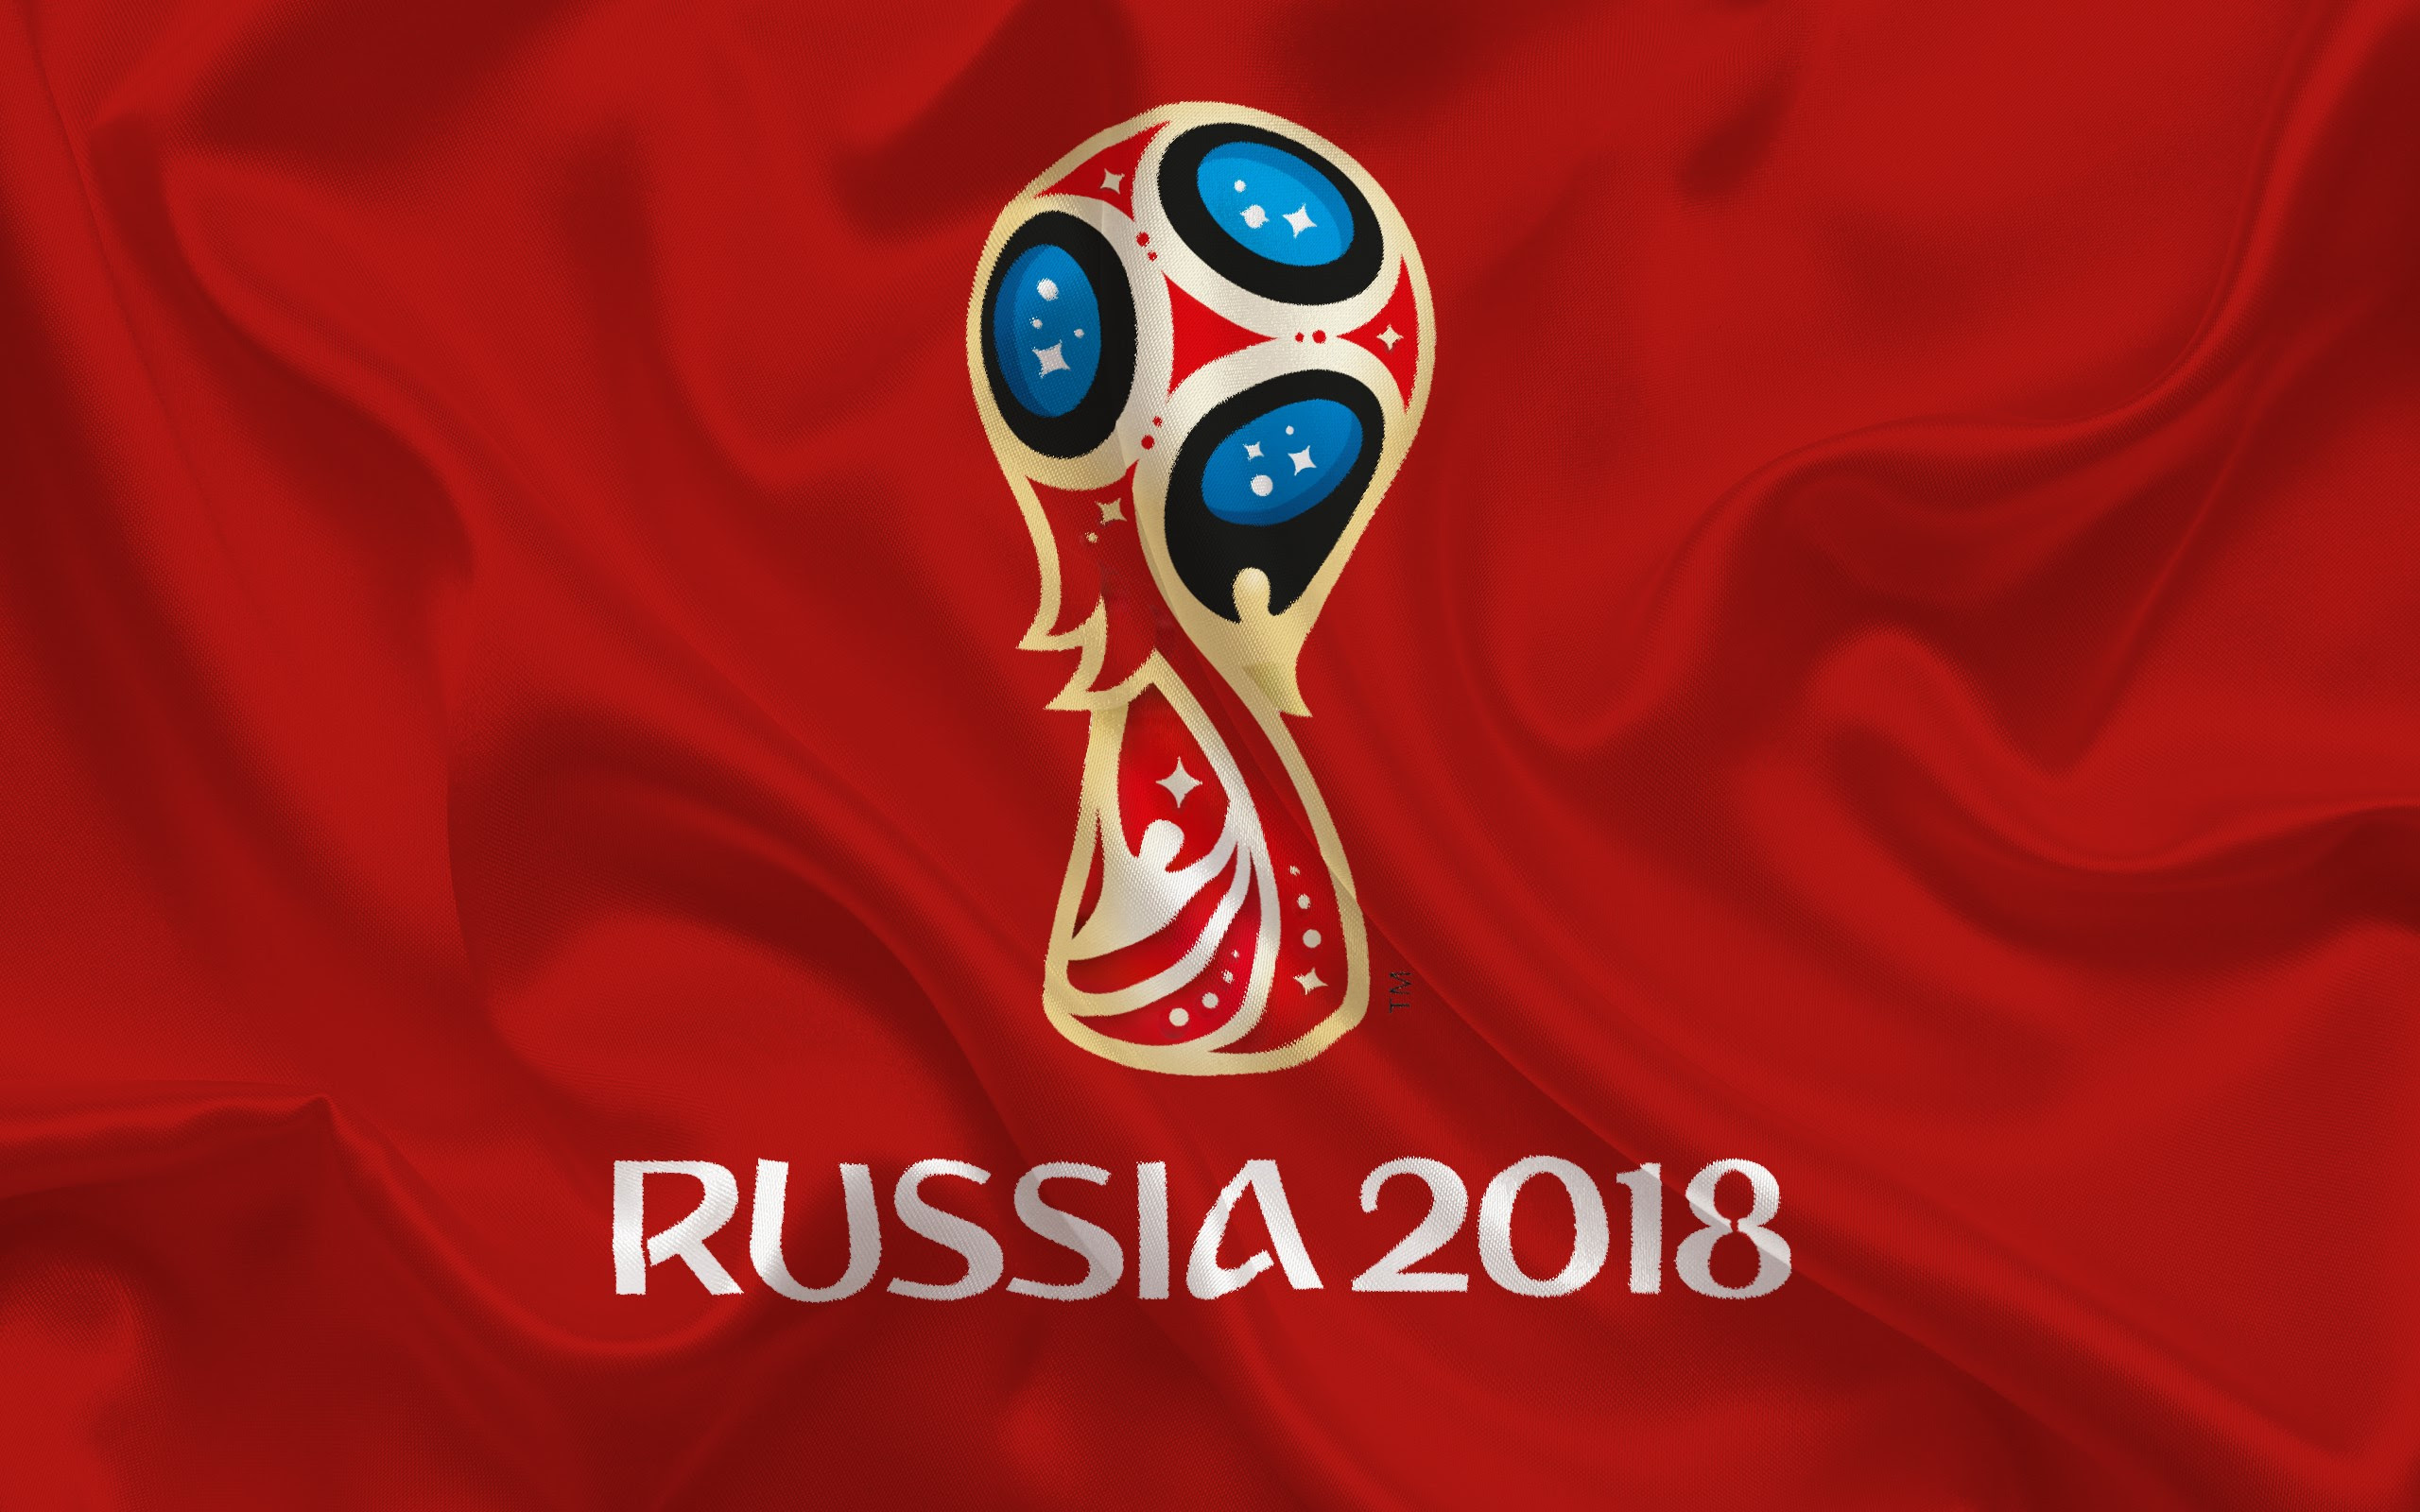 2018 Fifa World Cup Russia Wallpapers Hd Wallpapers